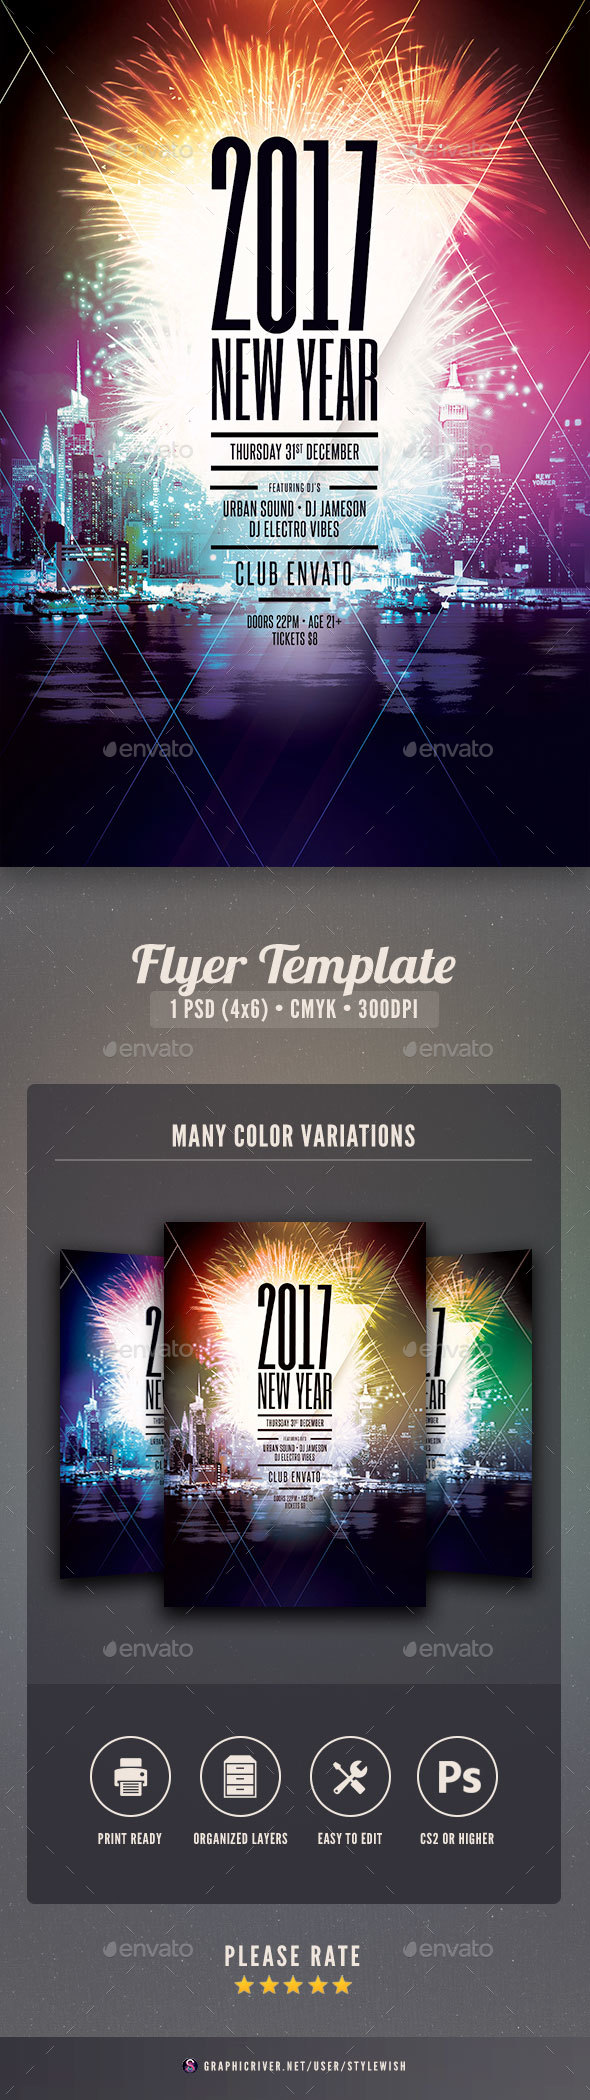 2017 new year flyer template clubs parties events